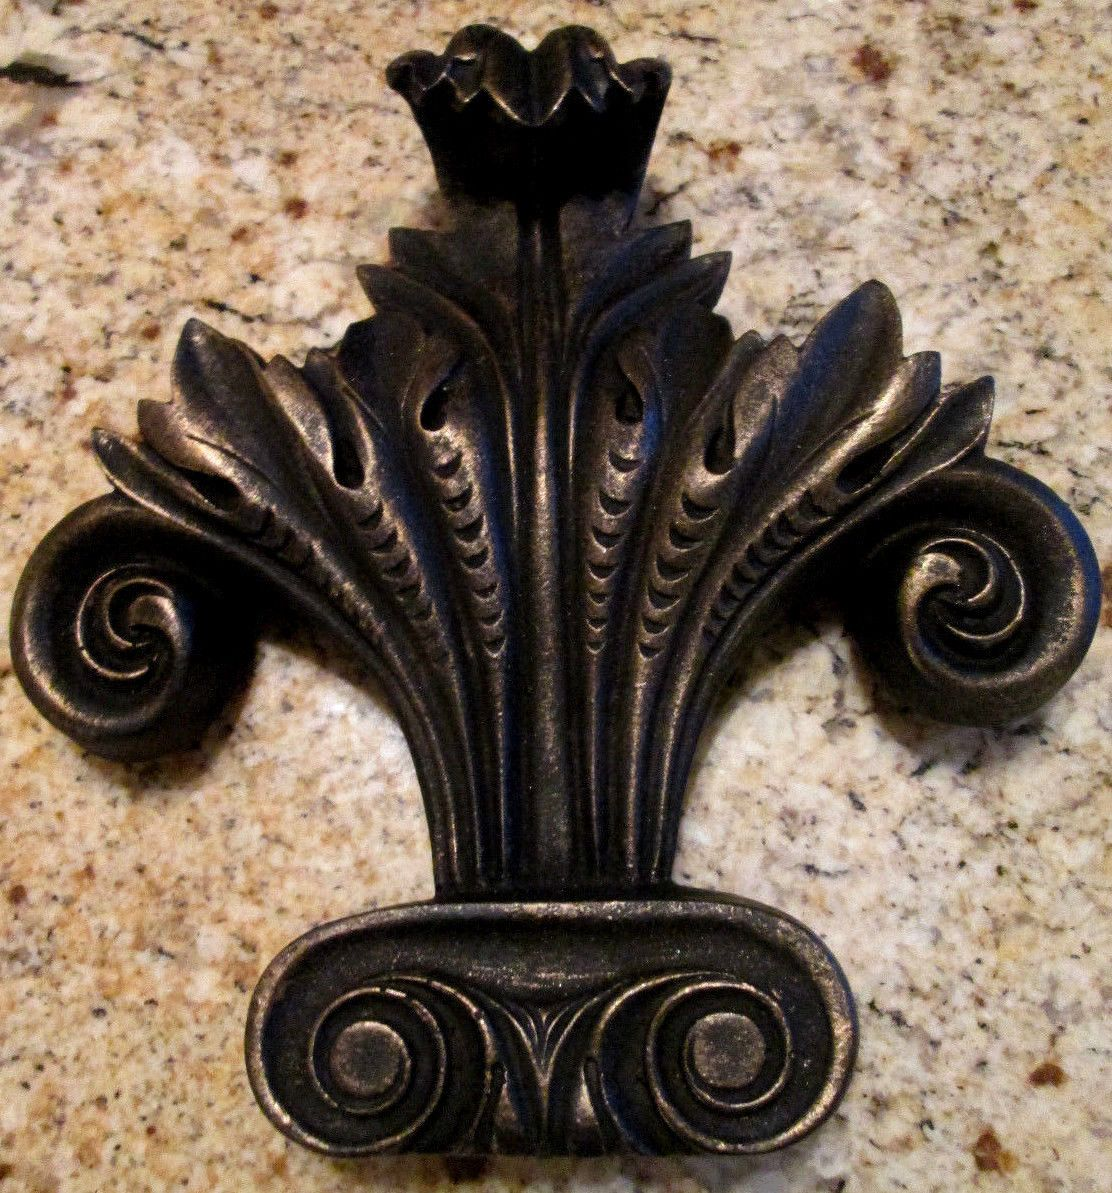 Fleur De Lis Wall Plaque Old World Tuscan French Country Medieval Home Decor Hand Made Wall Decor By Fl With Images Medieval Home Decor Handmade Wall Decor Wall Plaques